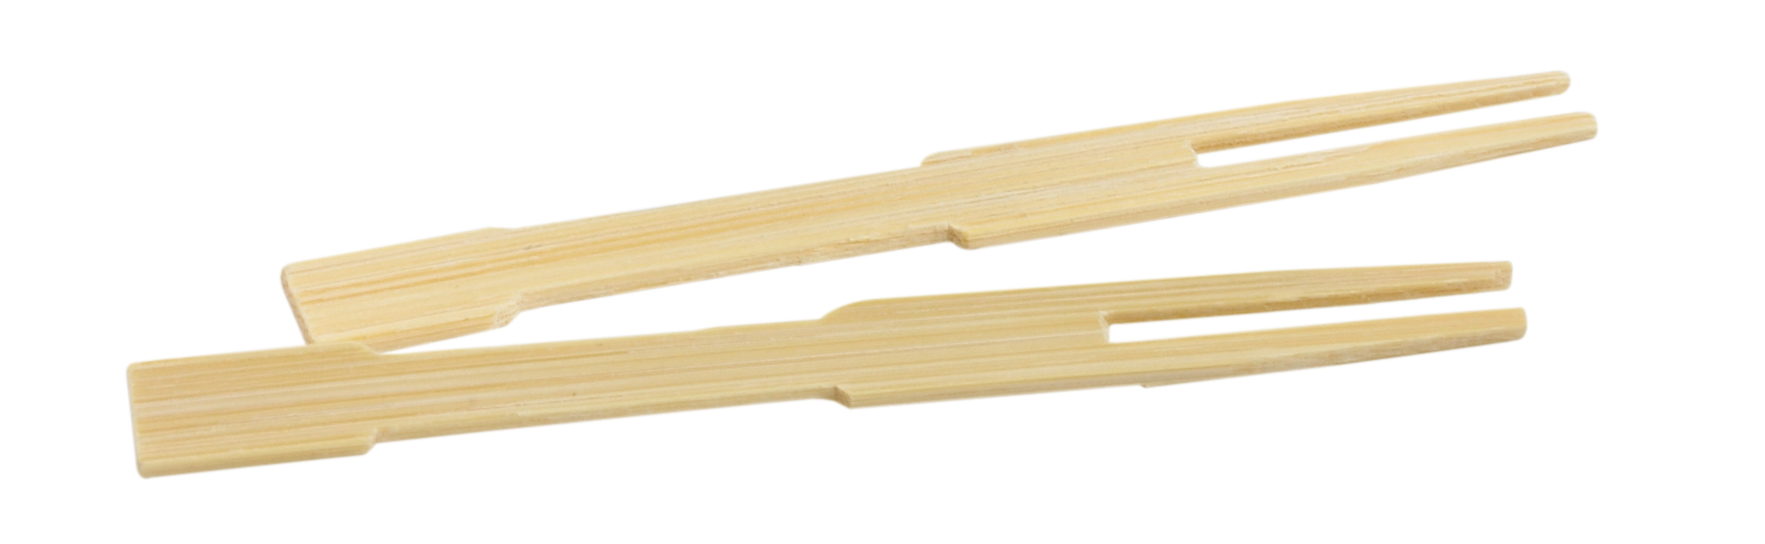 72 Picks in Total Bamboo Appetizer Picks by True 3-Pack